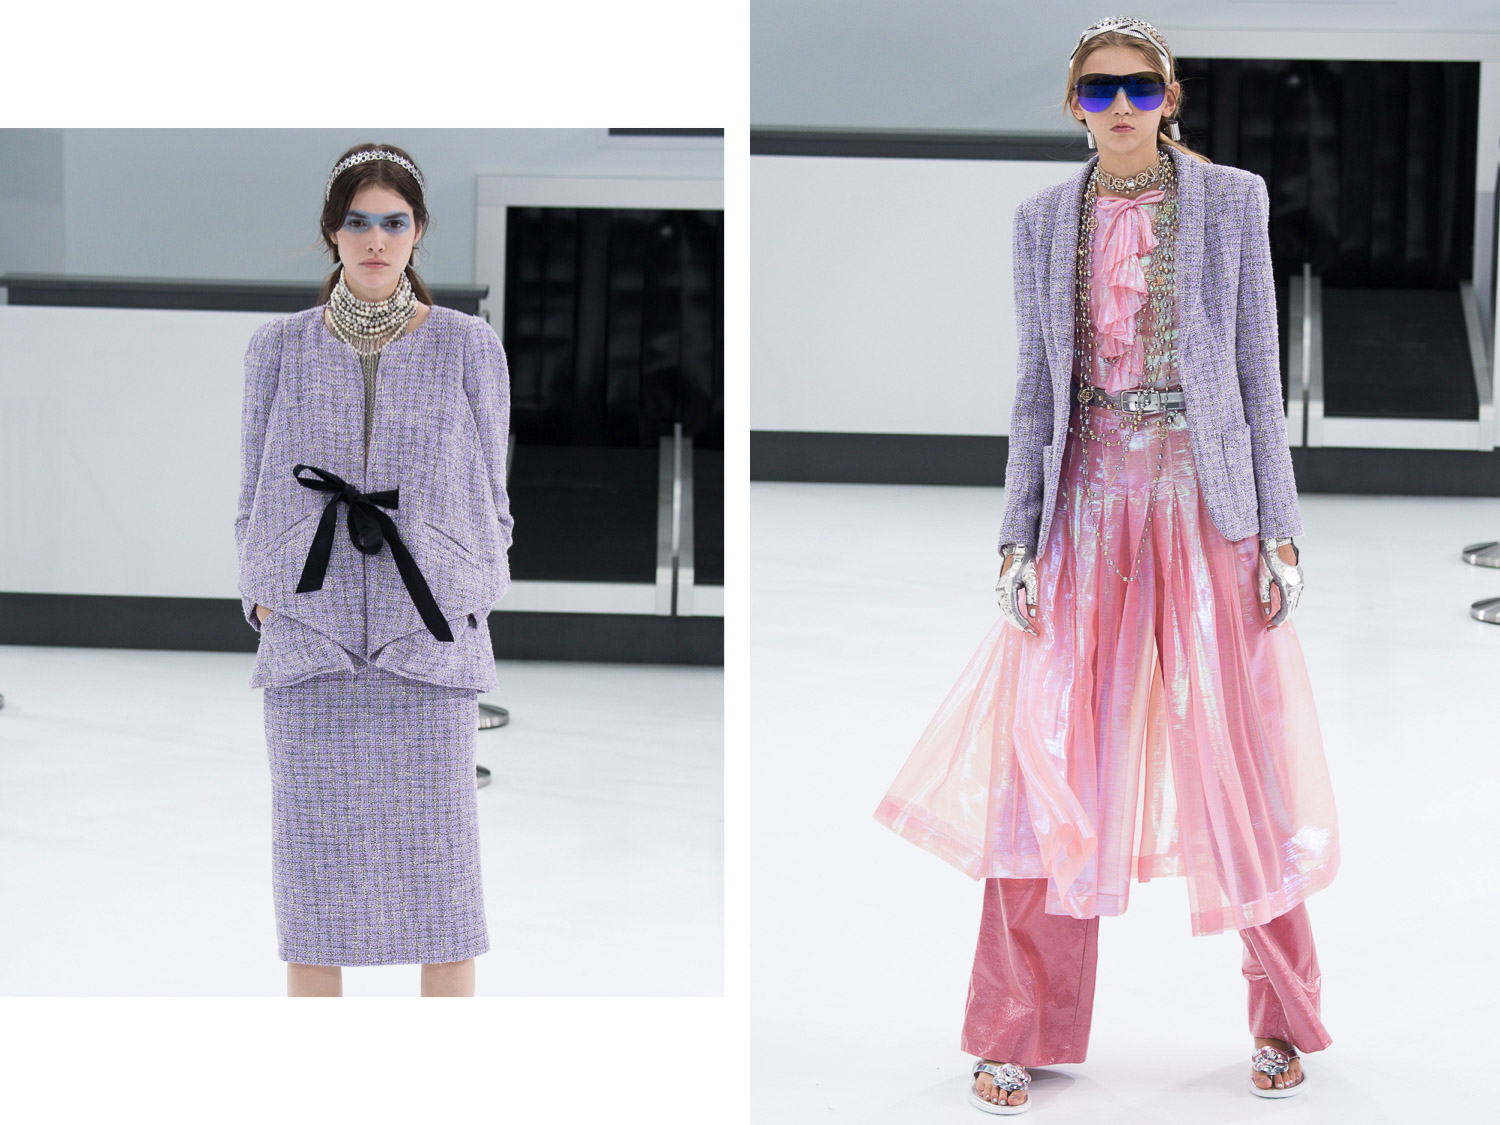 chanel-spring-2016_top-fashion-bloggers-uk_London's-best-fashion-bloggers-2016_top-best-liverpool-bloggers-2016-4